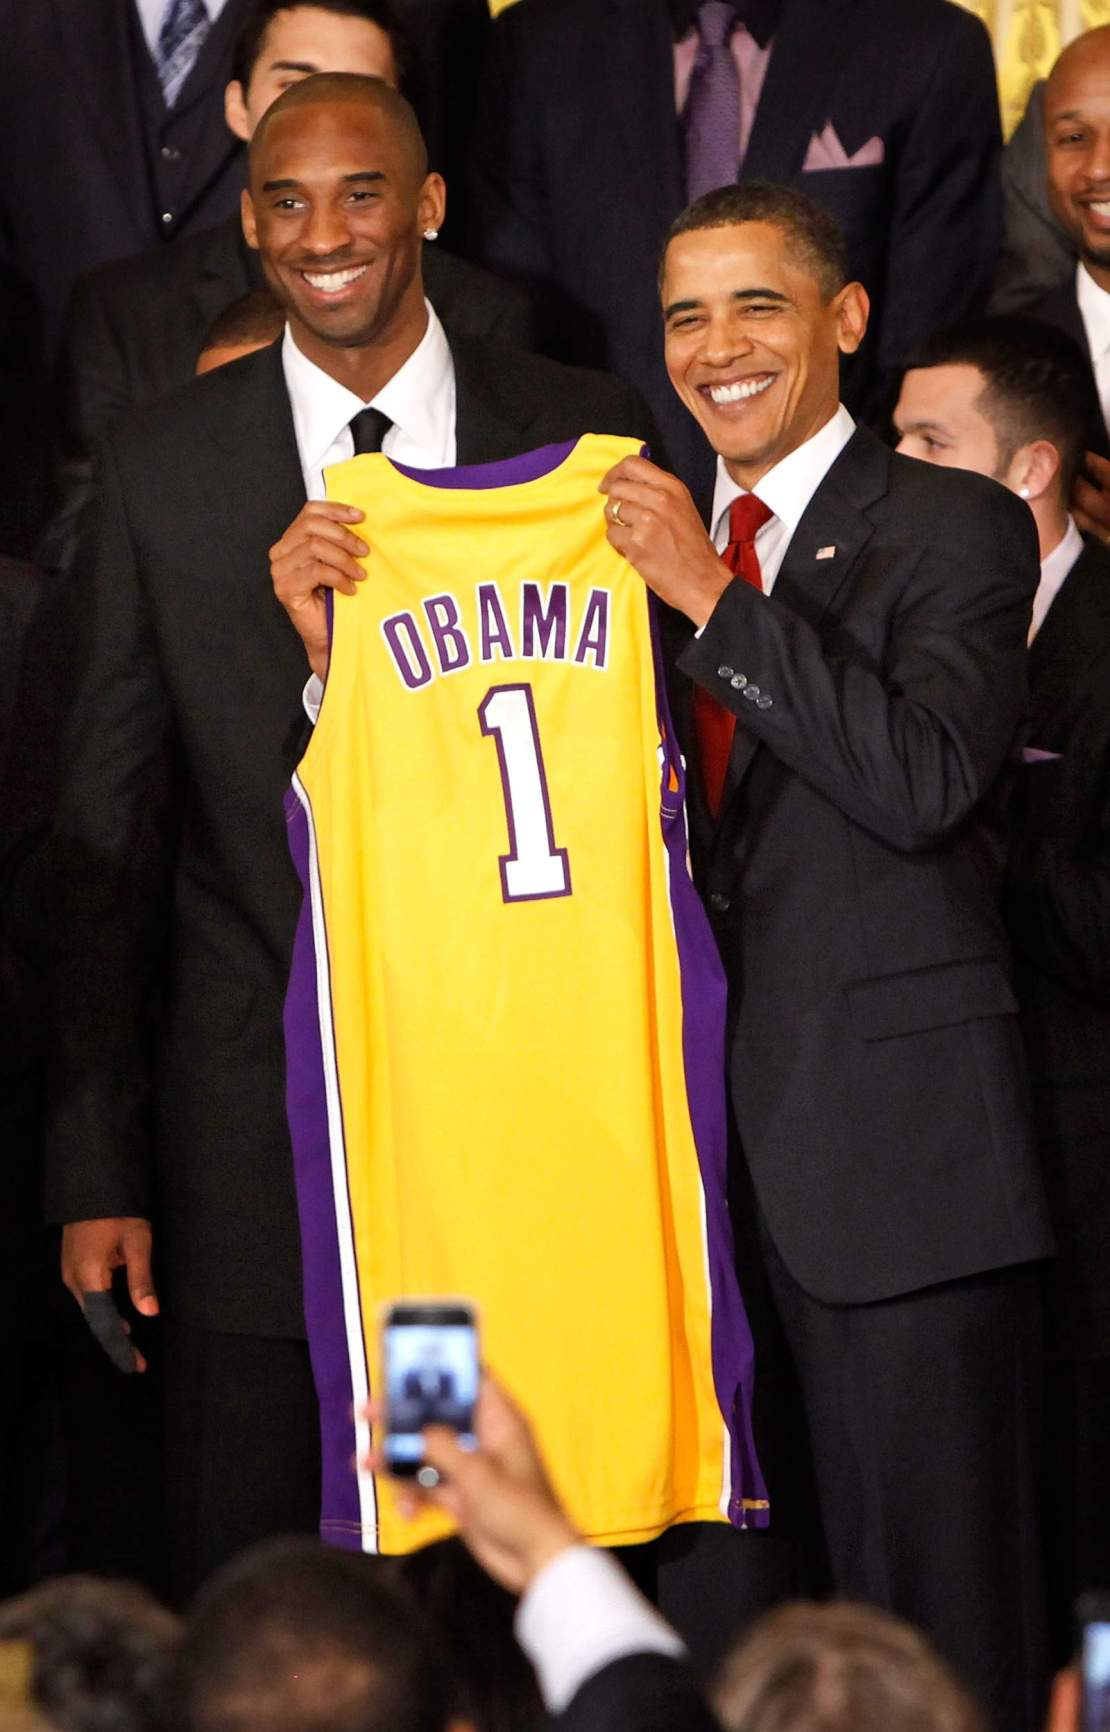 Then-President Barack Obama, at right, poses for photos with Kobe Bryant and members of the NBA 2009 champion Los Angeles Lakers -- this was taken in the East Room of the White House on Jan. 25, 2010.